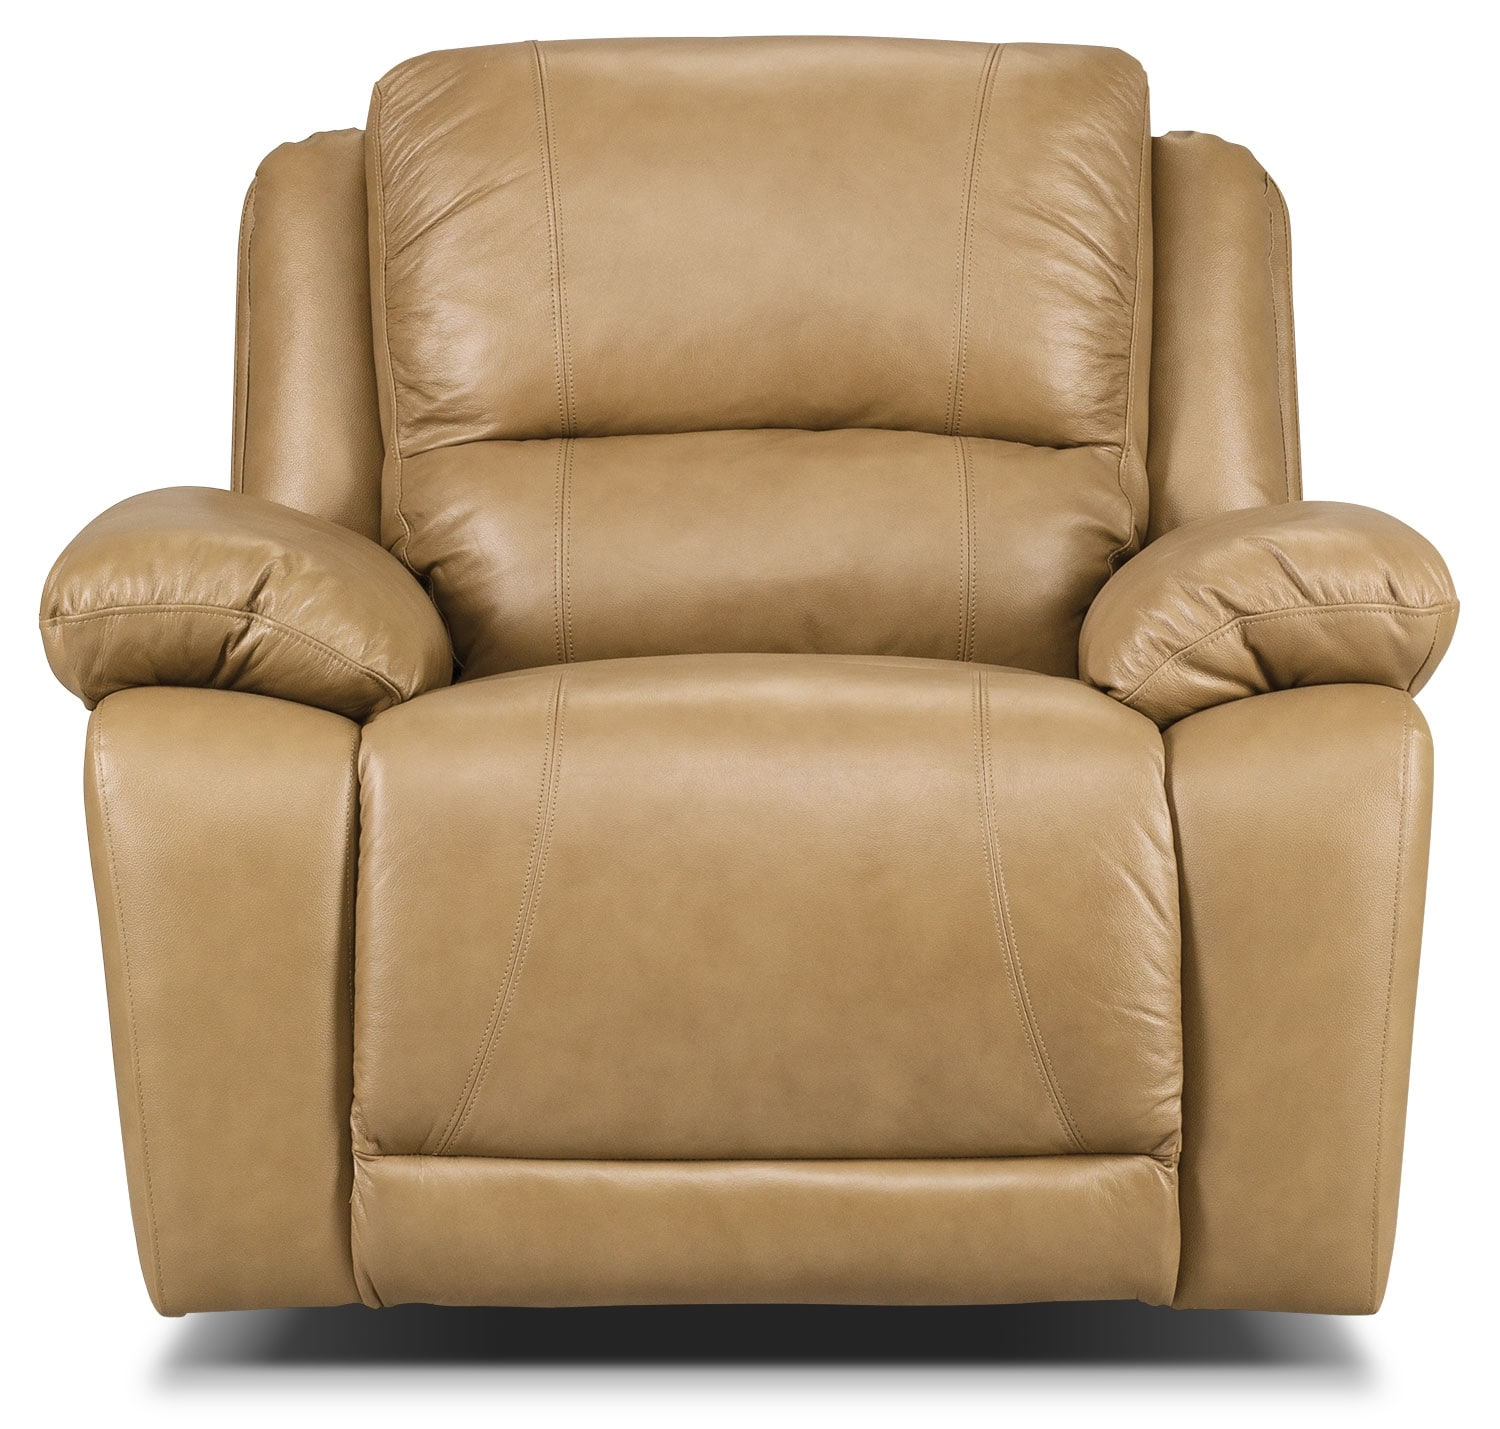 Marco Genuine Leather Rocker Reclining Chair - Toffee